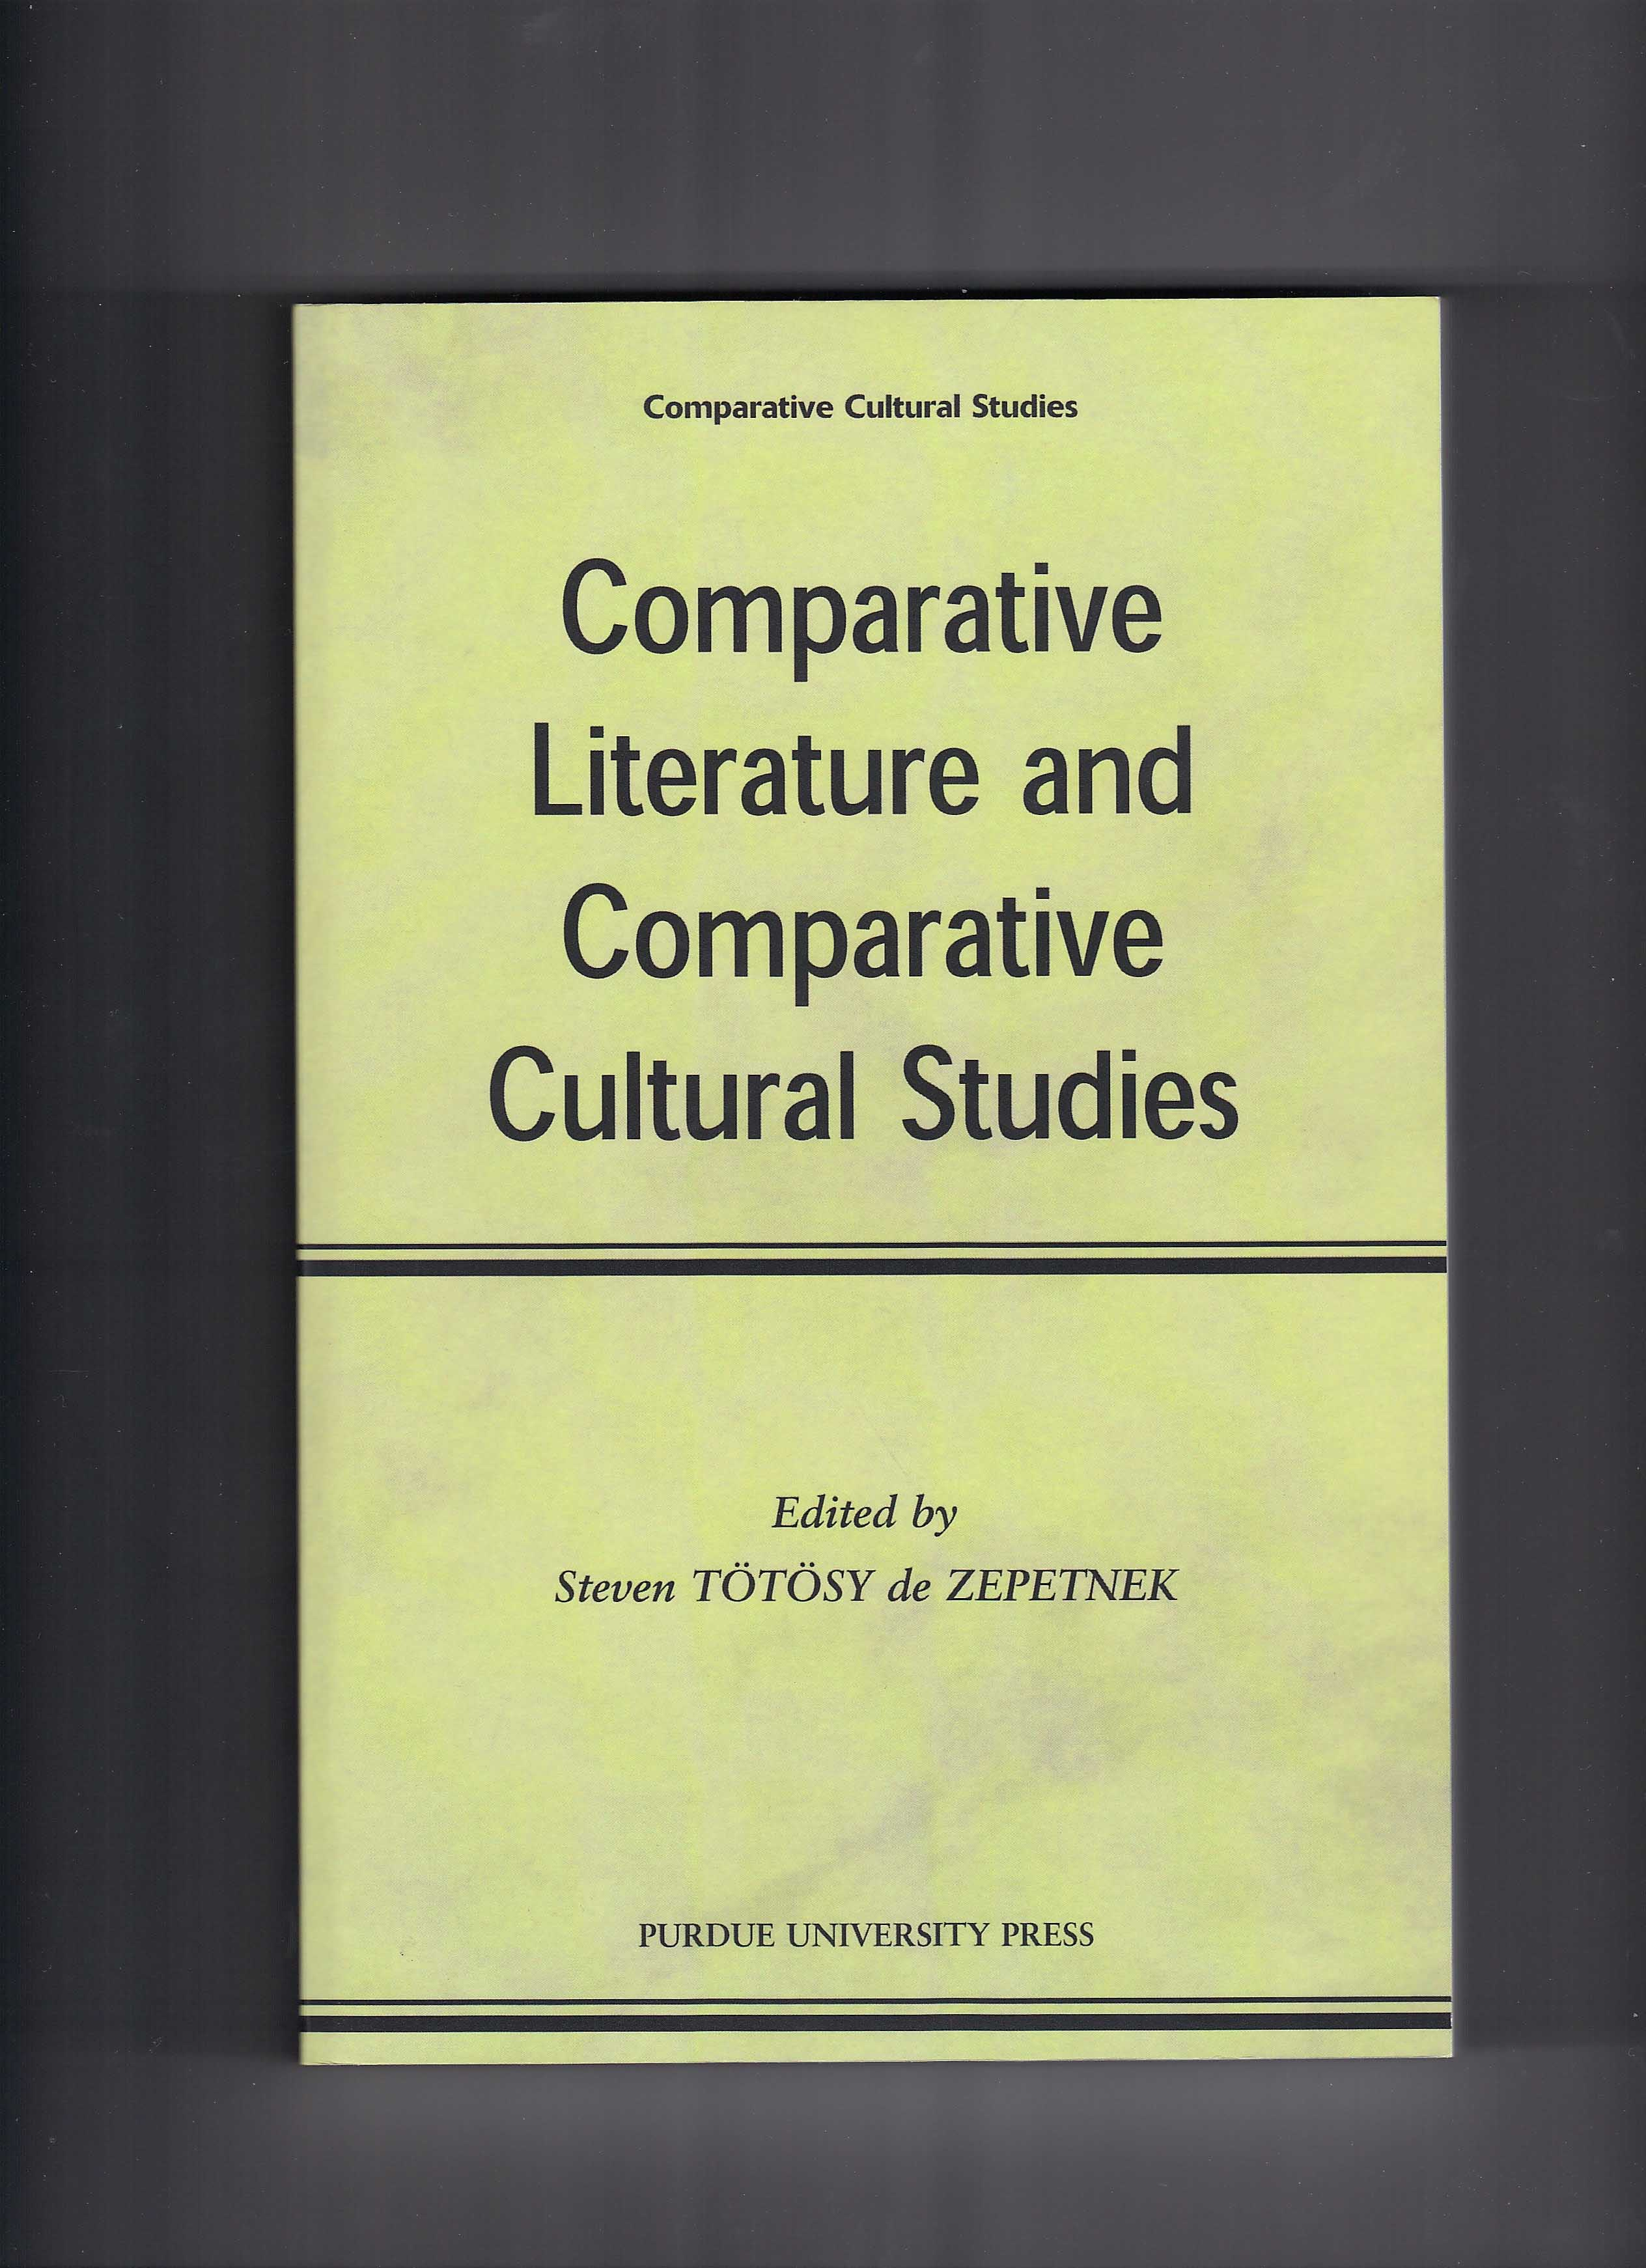 Comparative Literature and Comparative Cultural Studies. Ed. Steven T�t�sy de Zepetnek. West Lafayette: Purdue University Press, 2003.